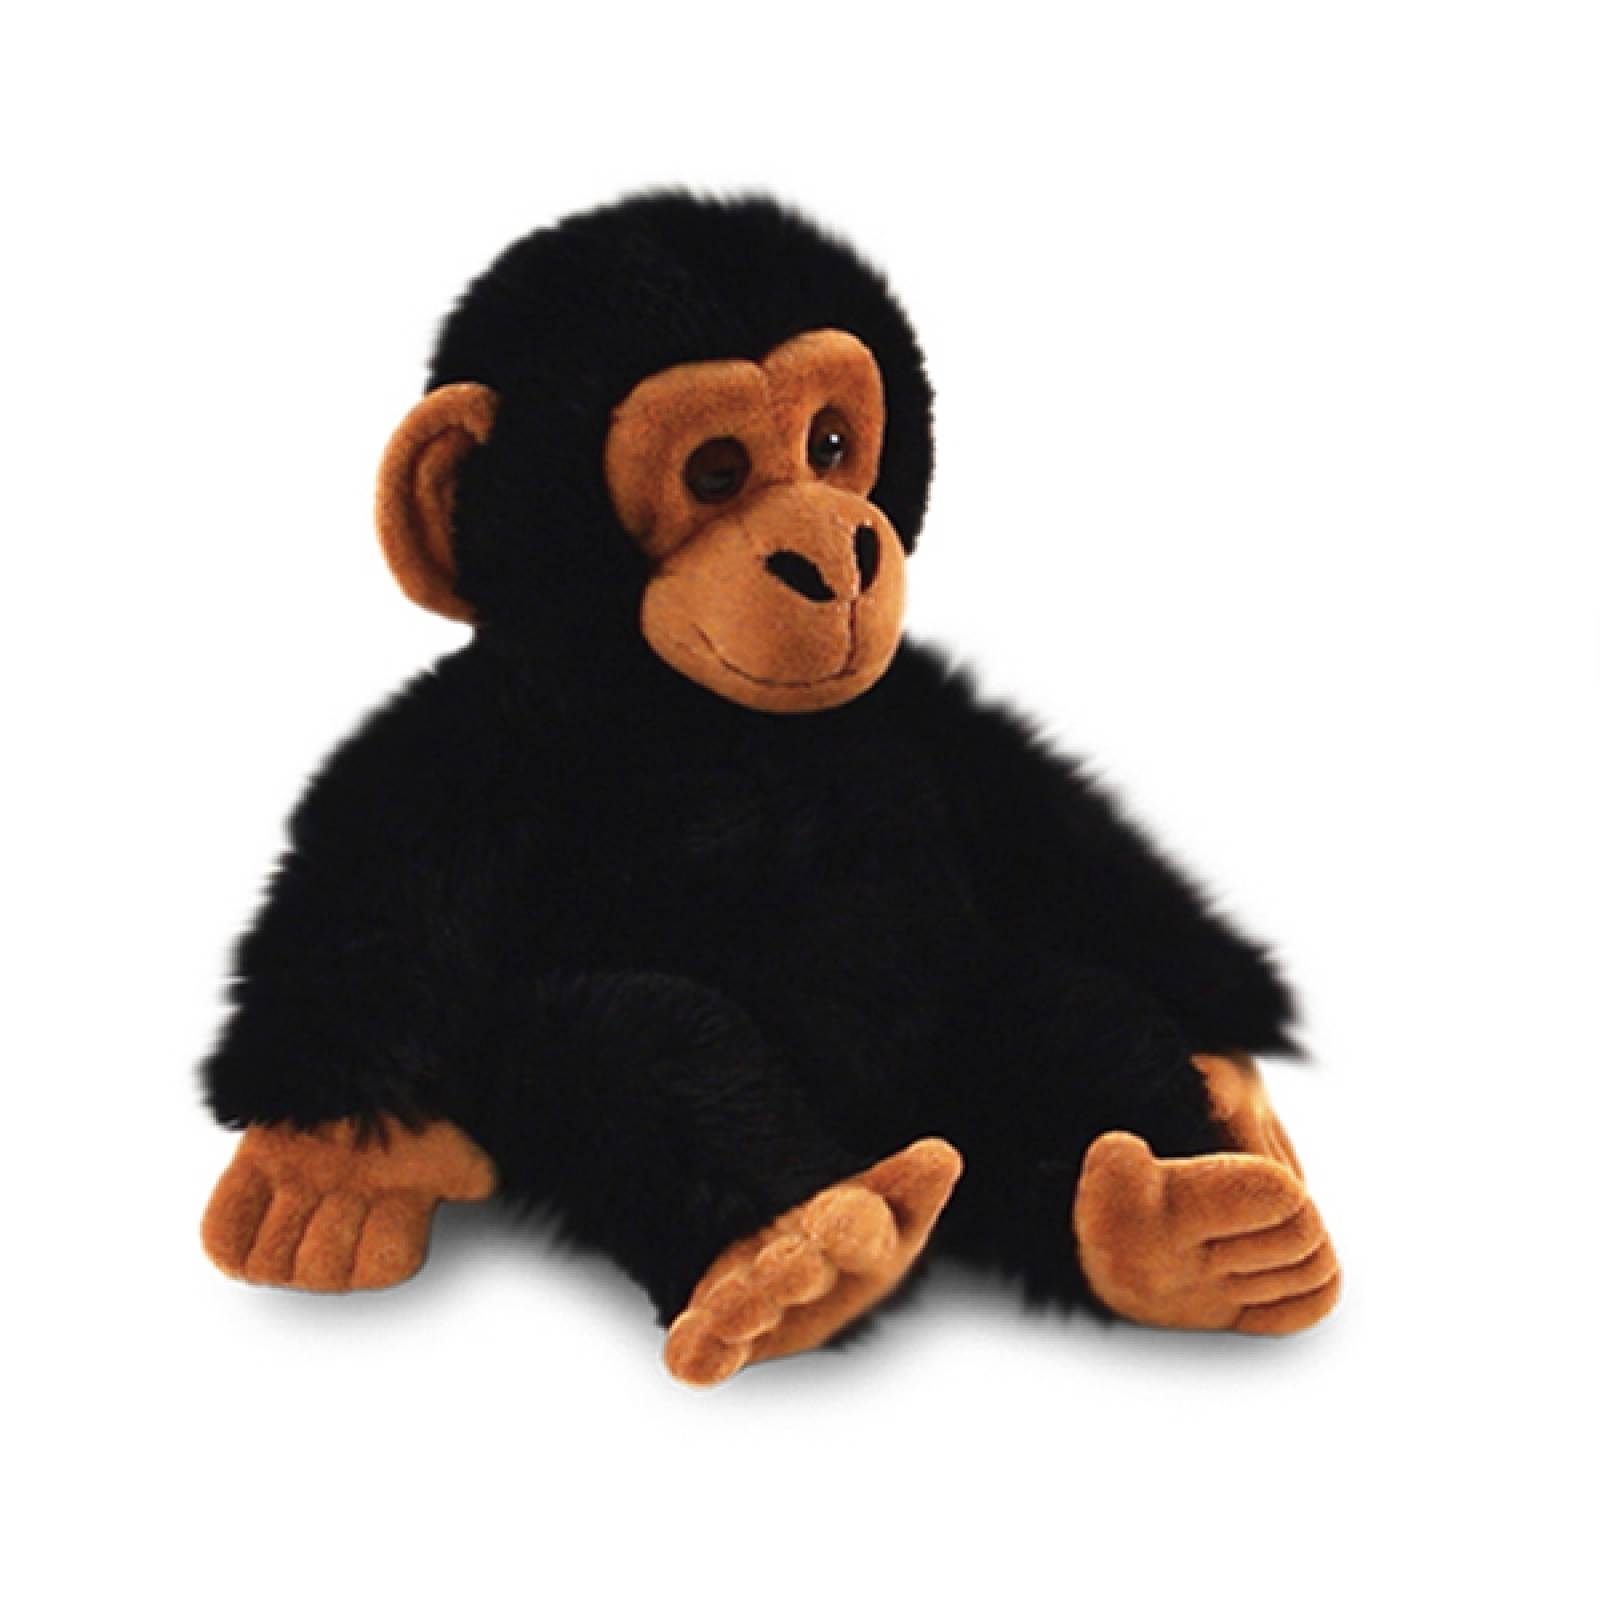 Chimp Monkey Soft Toy 20cm.